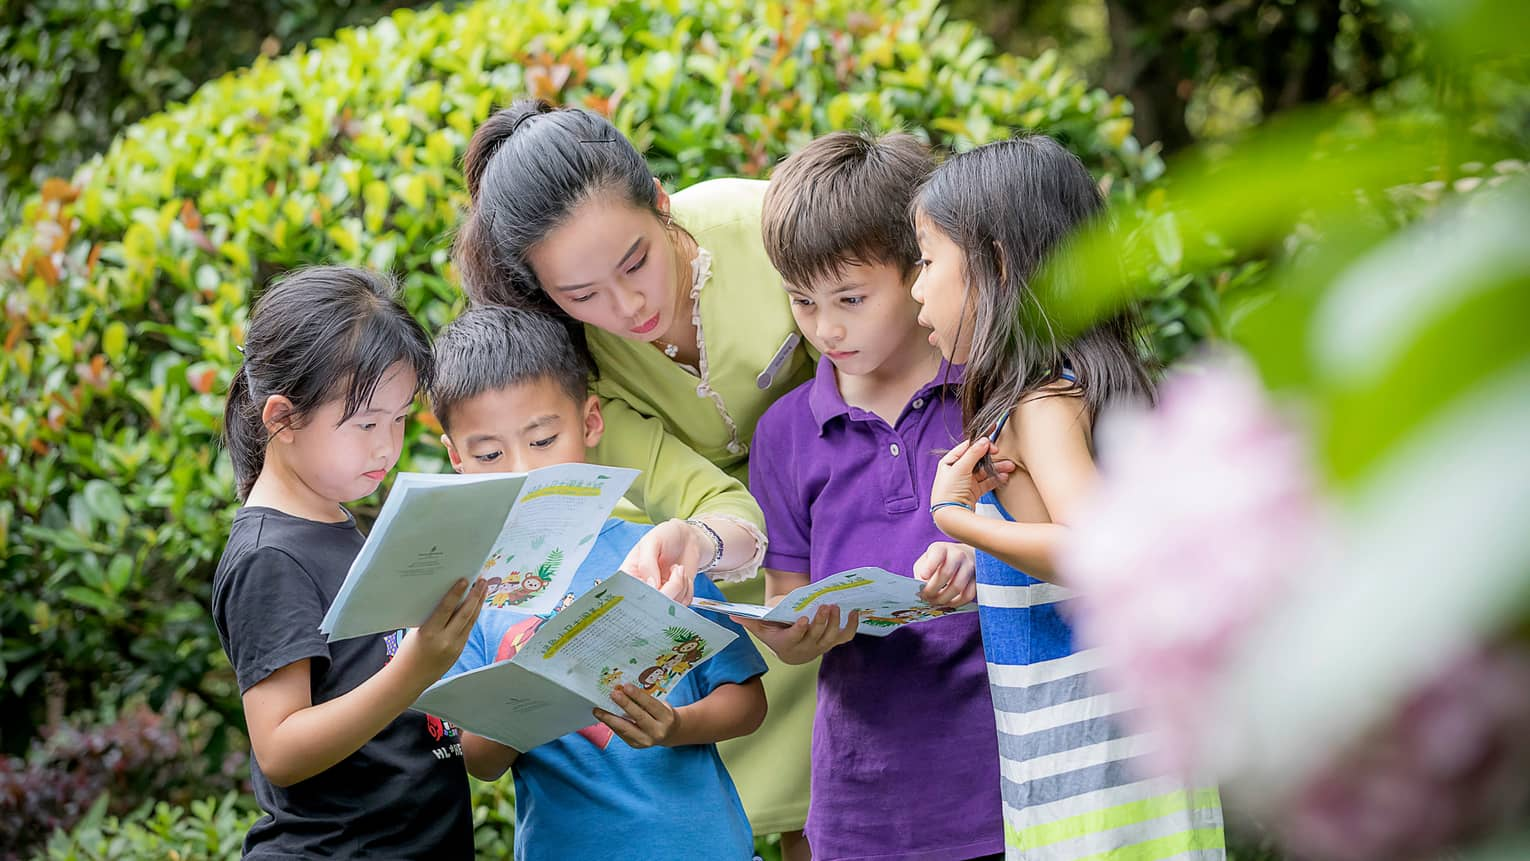 Children gather around hotel staff with treasure hunt kids activity pamphlets